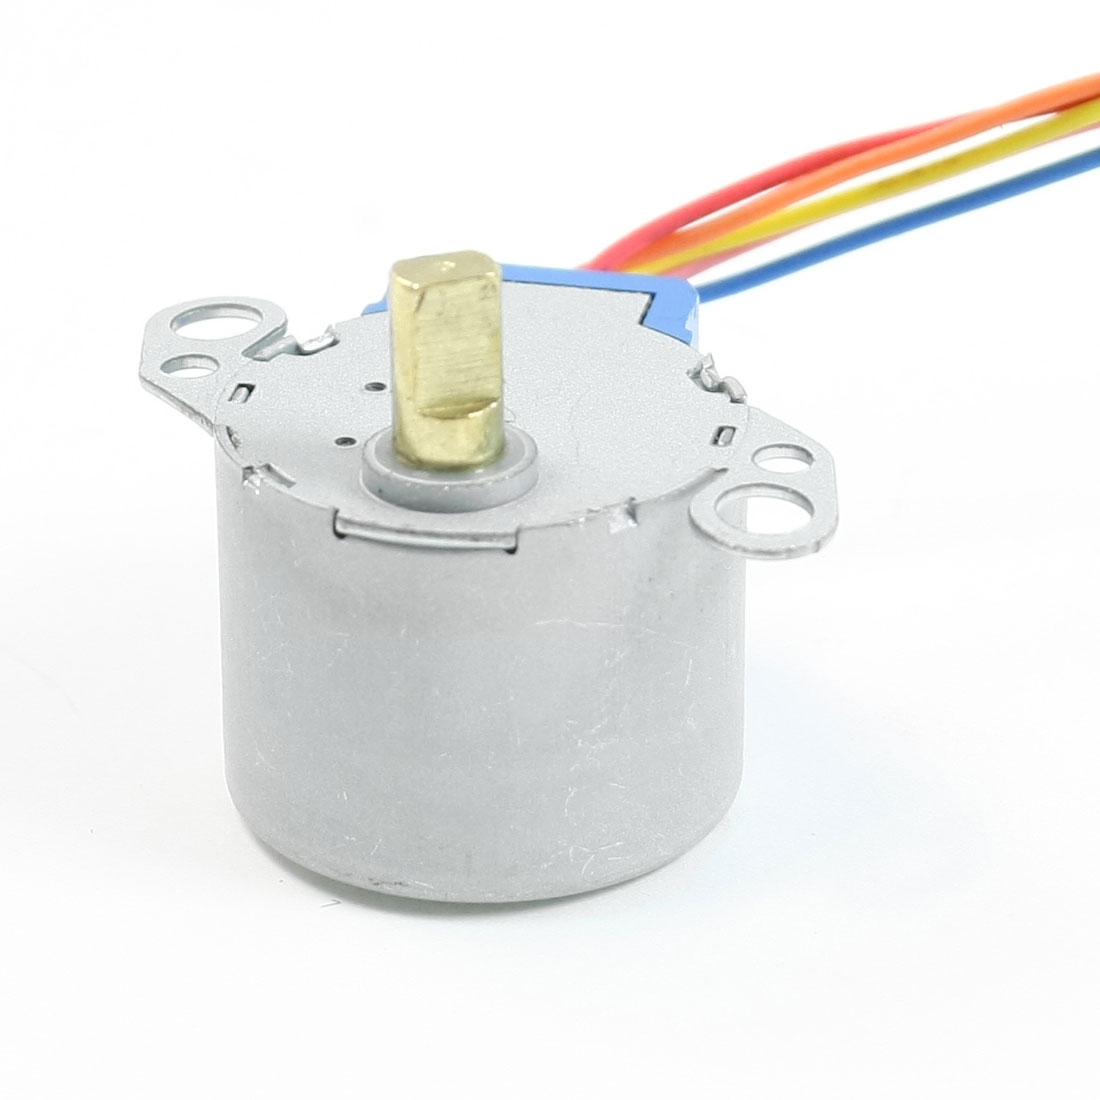 CW/CCW 5mm Shaft Metal Shell Fan Synchronous Motor 24RPM DC 12V